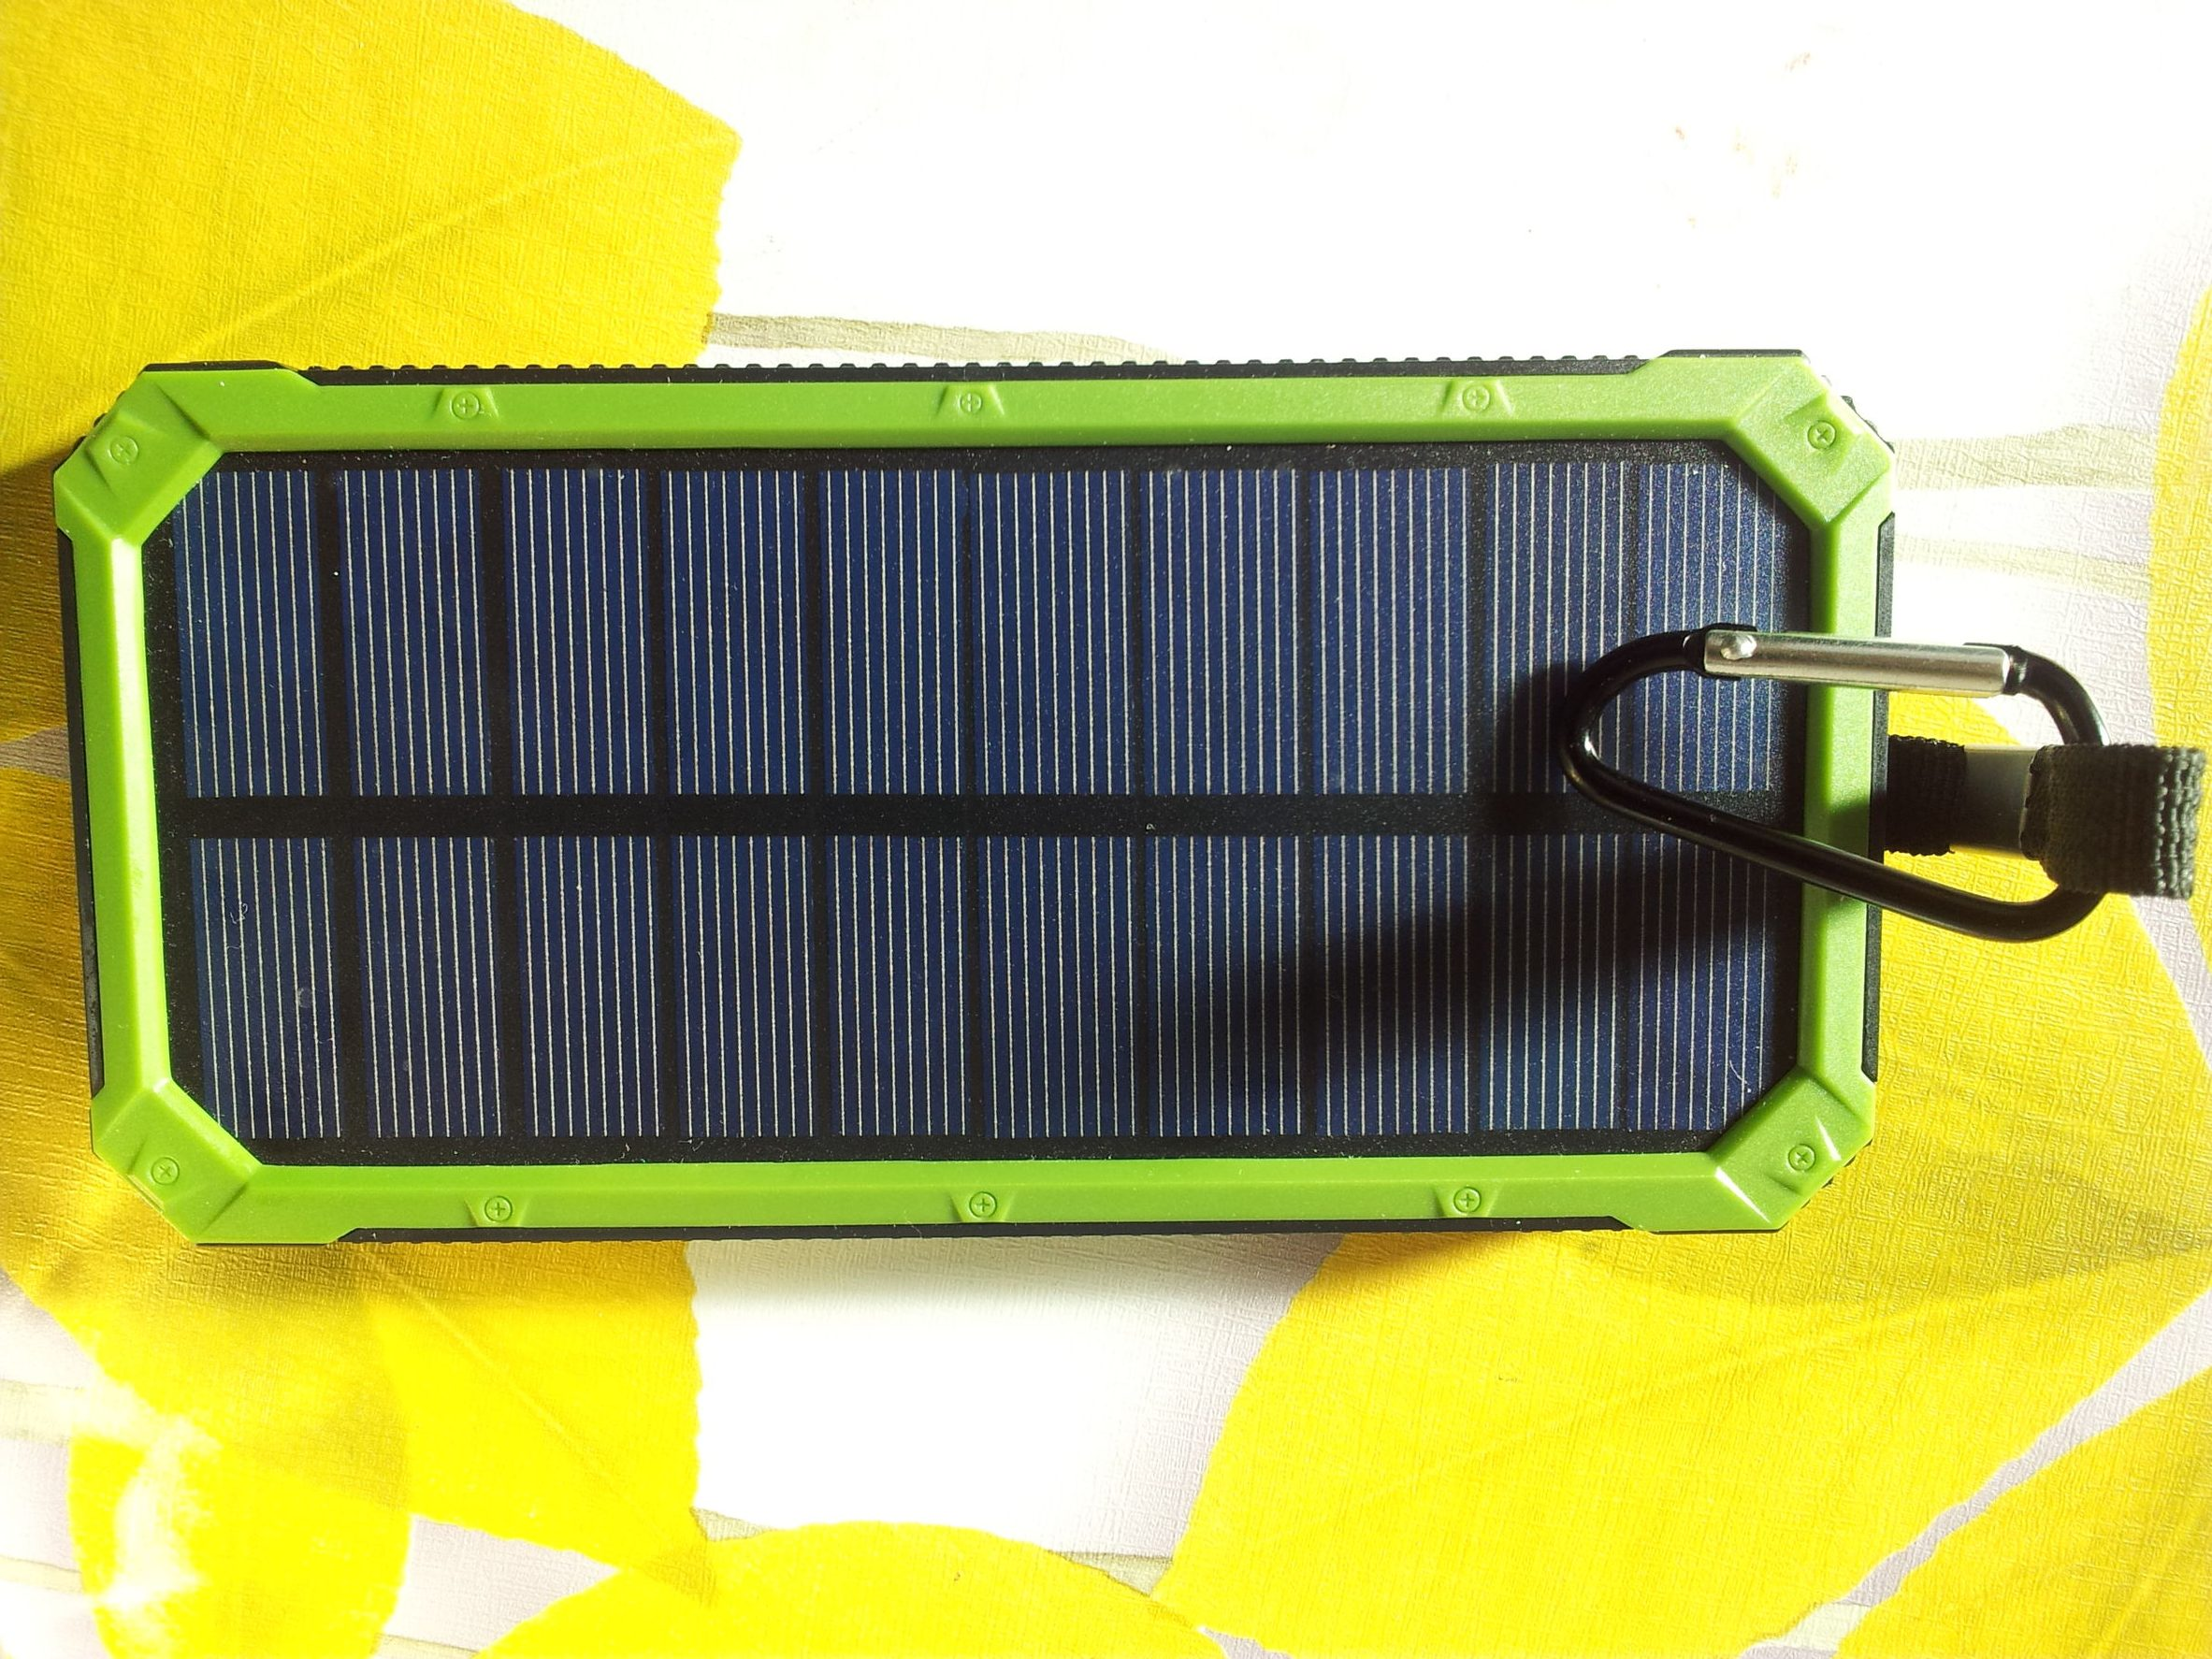 Best Solar Phone Charger 2020: Shopping Guide & Review